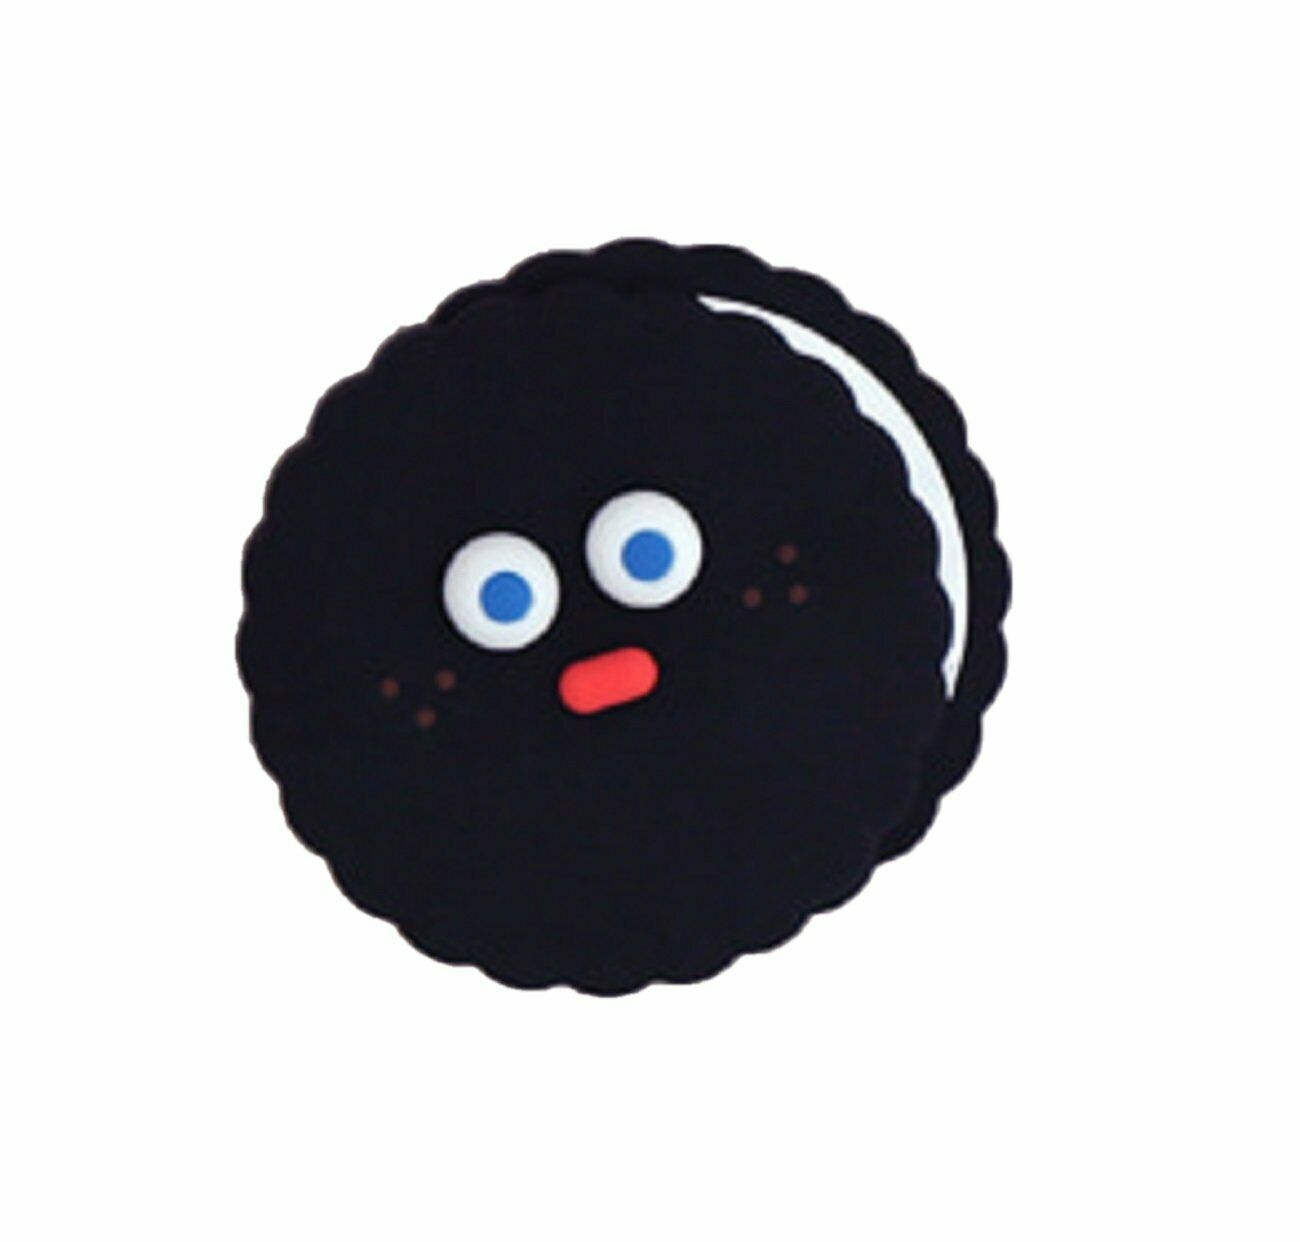 Brunch Brother popped Eye Handheld Mirror Makeup Hand Mirror (Black Pompom)